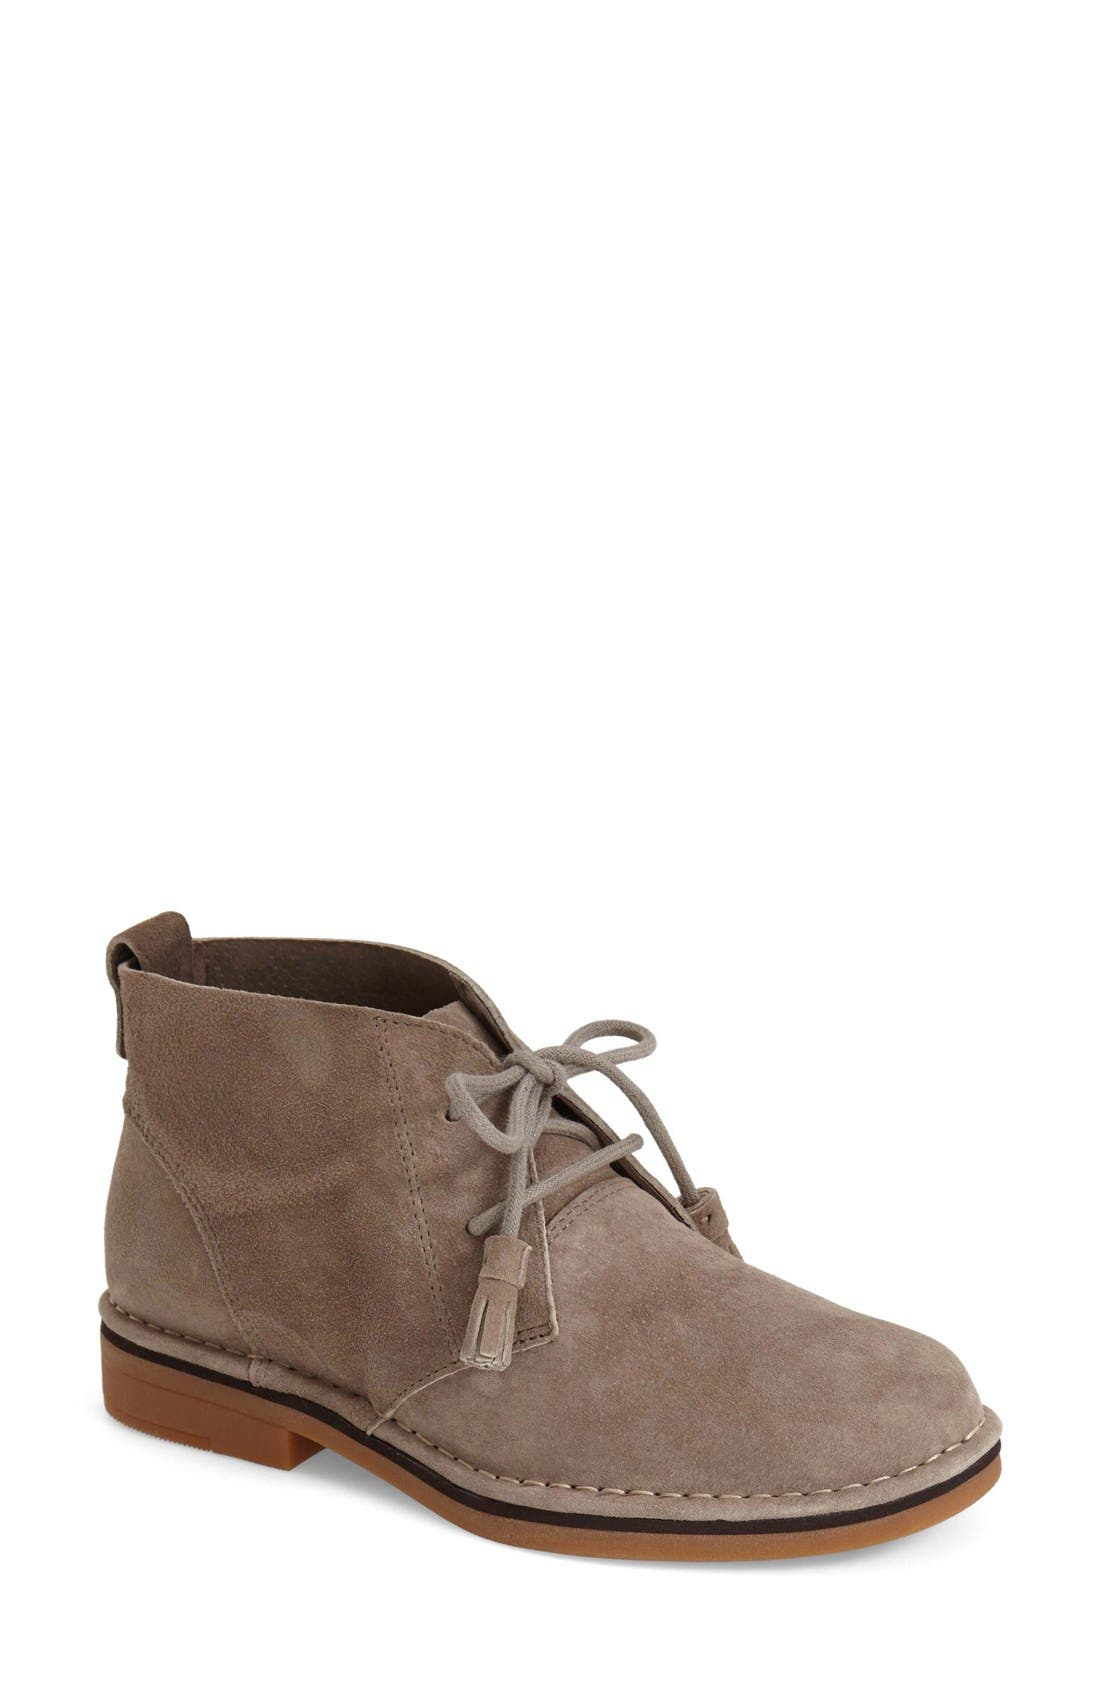 Main Image - Hush Puppies® 'Cyra Catelyn' Chukka Boot (Women)